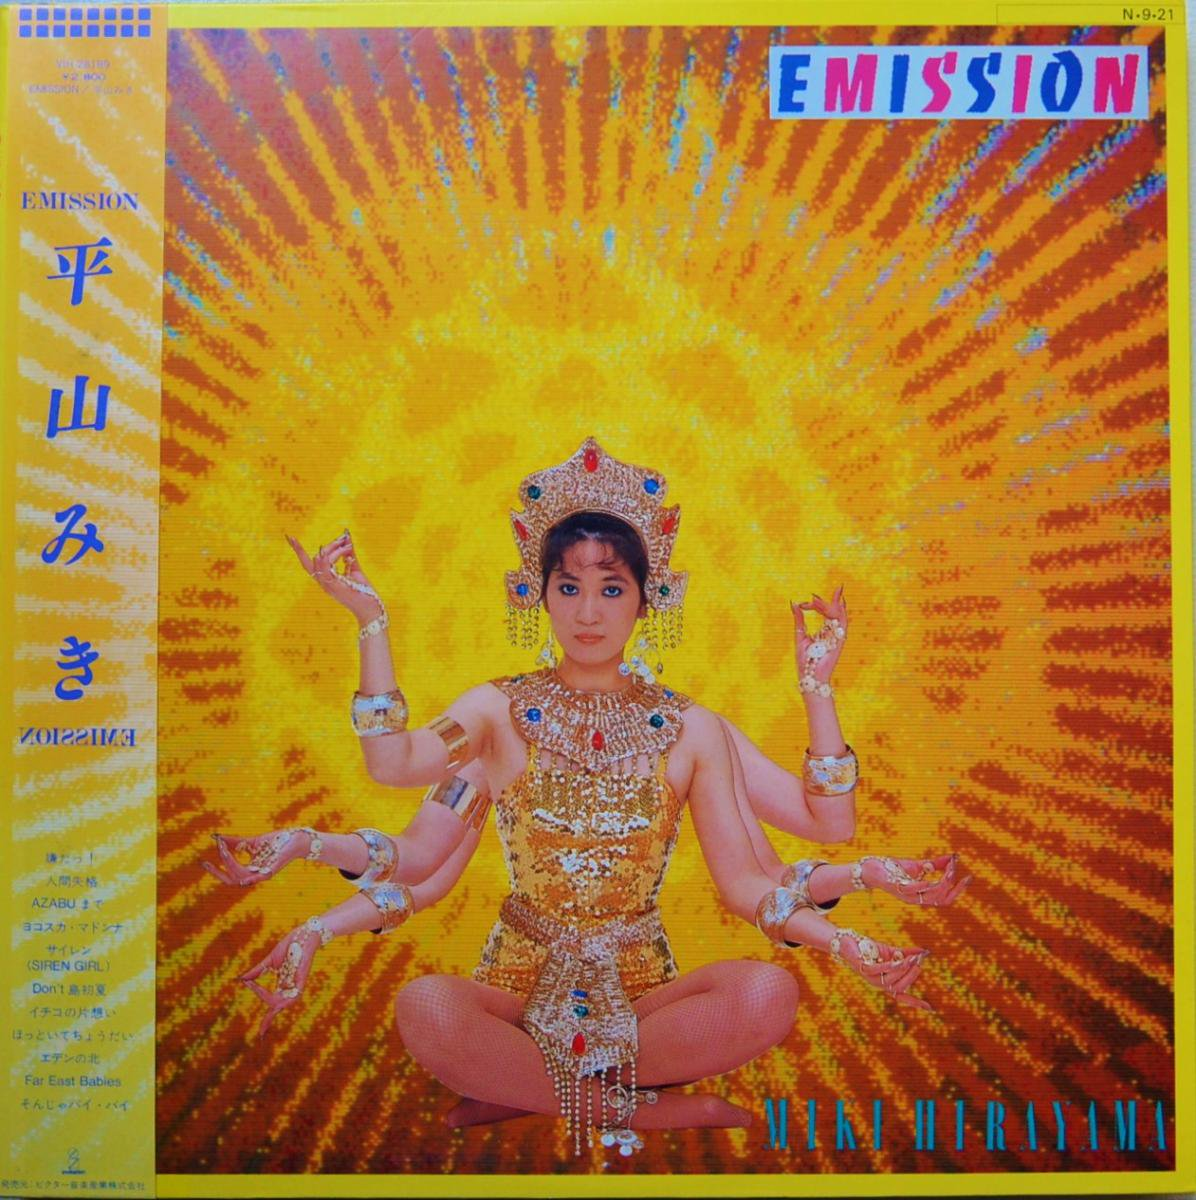 平山みき MIKI HIRAYAMA / EMISSION (LP)